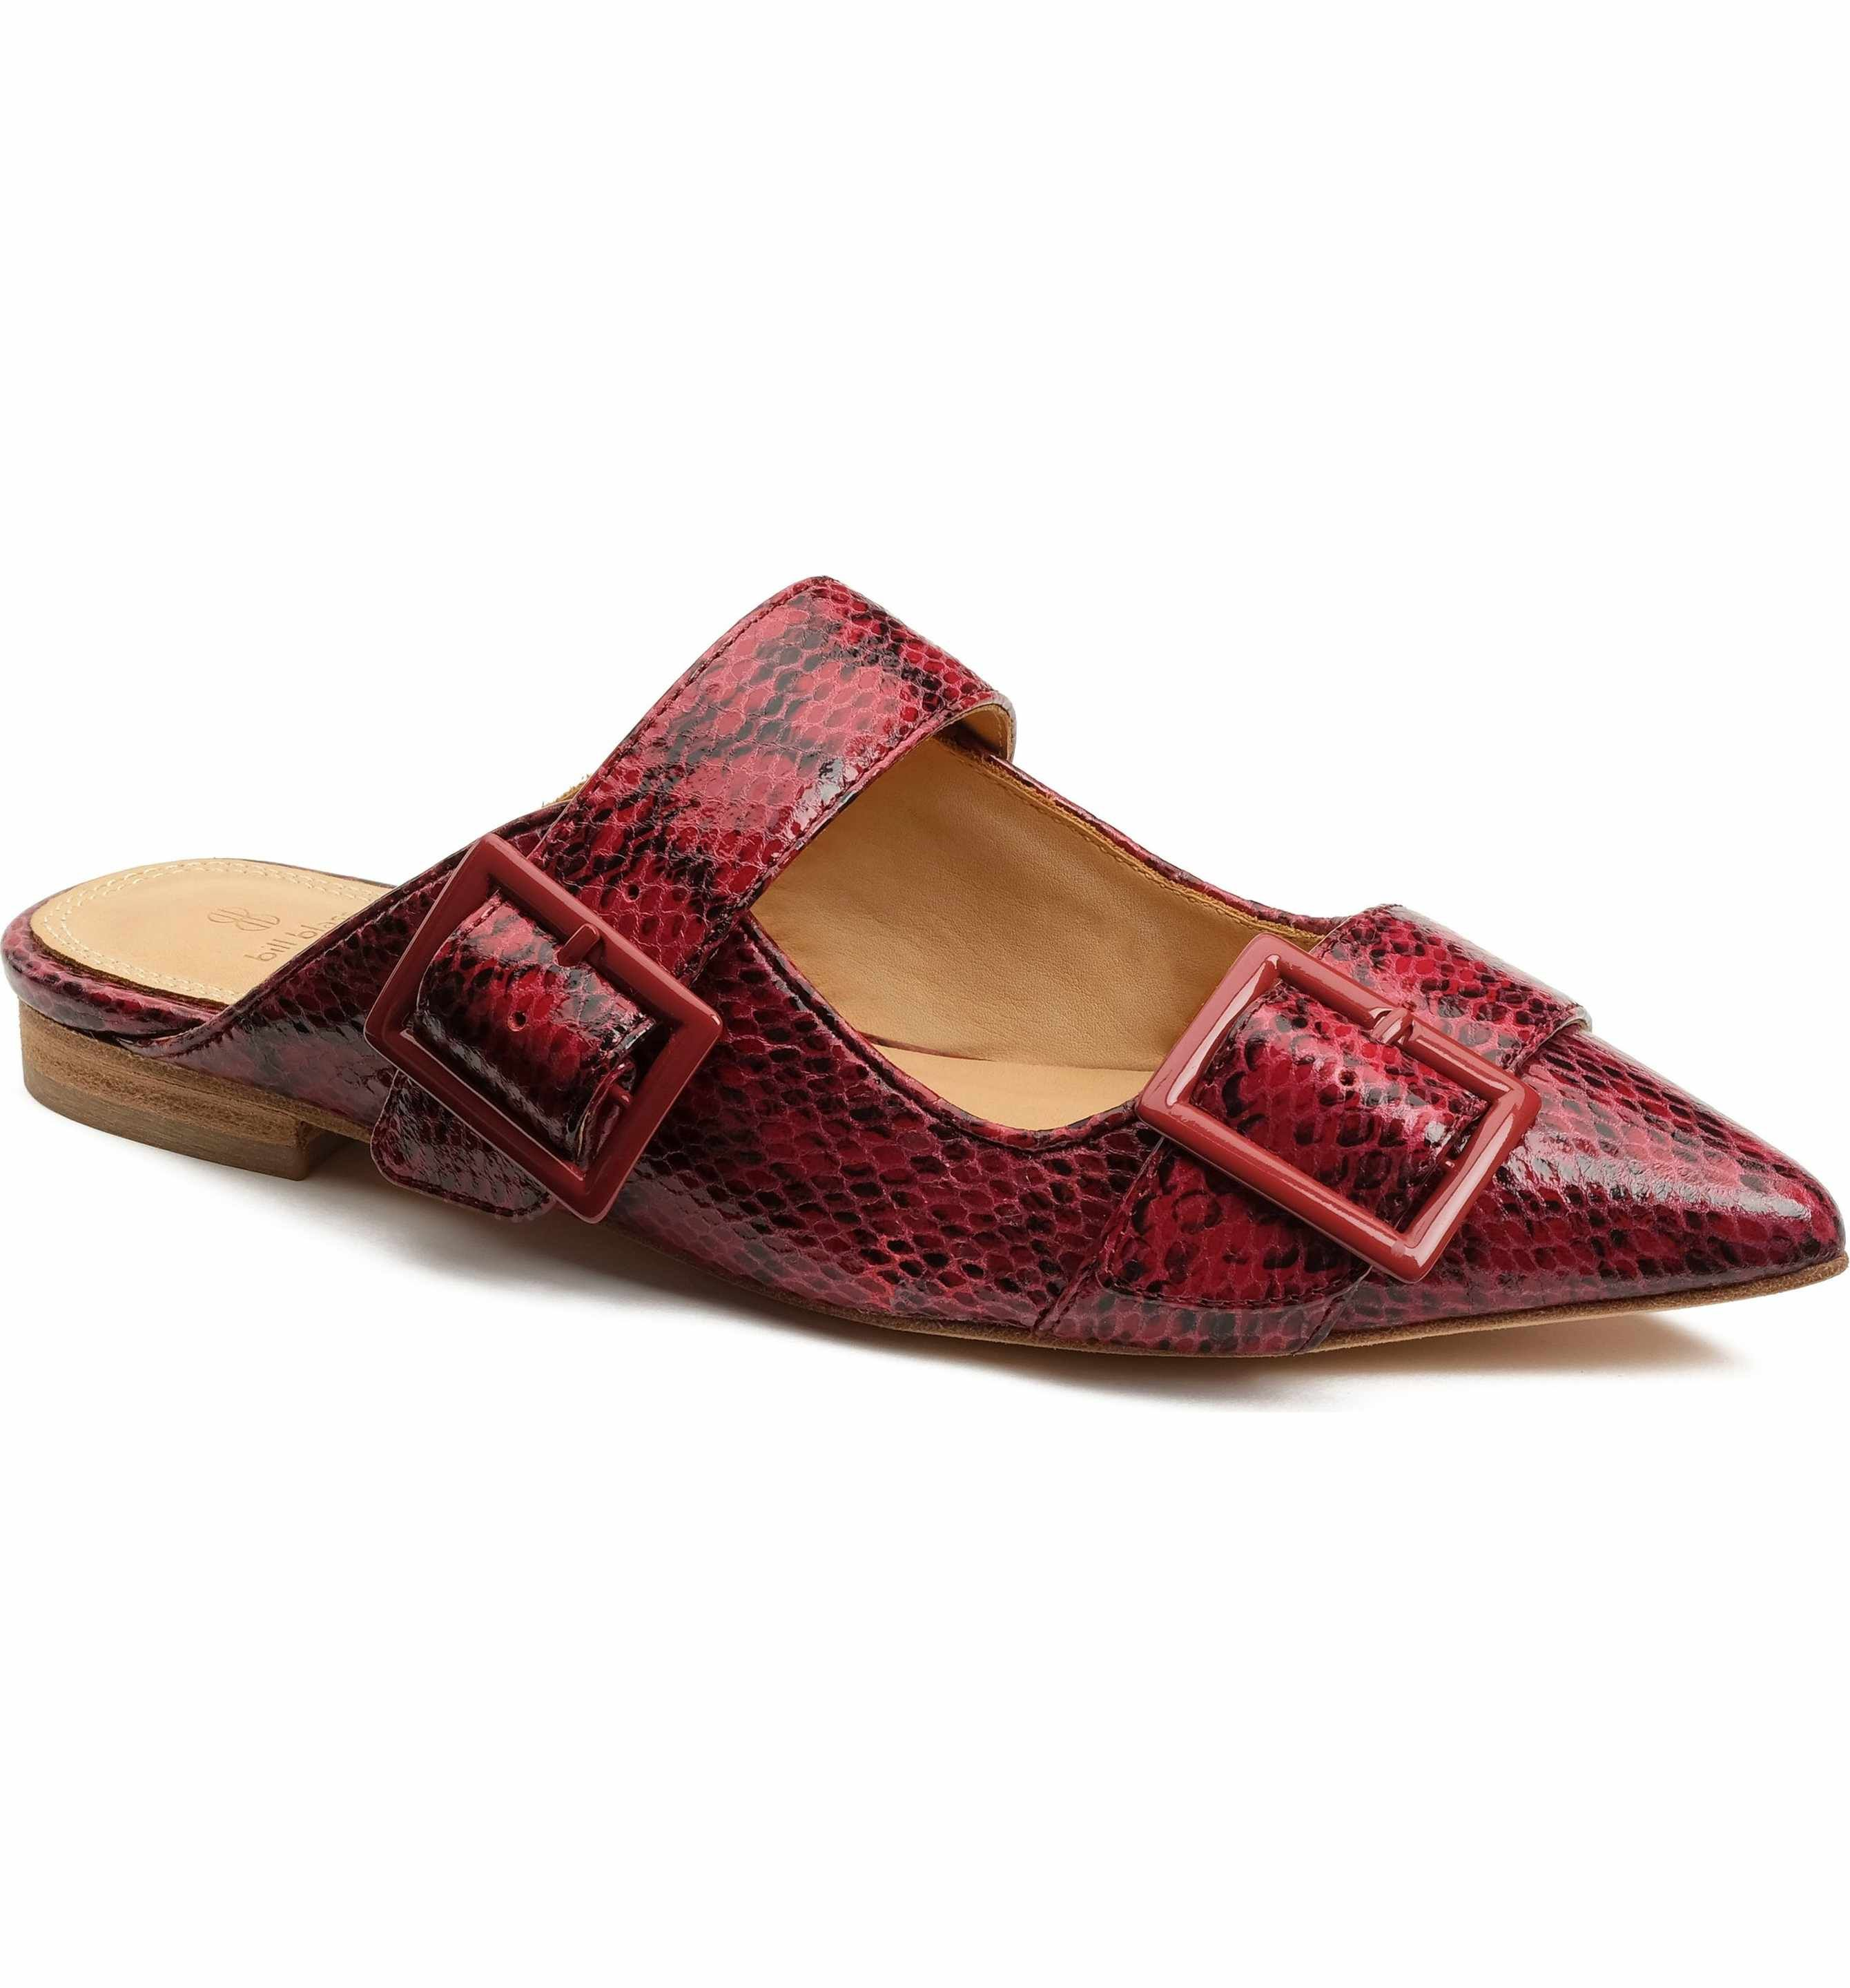 shopping online clearance Bill Blass Leather Pointed-Toe Mules sale really factory outlet cheap online perfect cheap price free shipping fashion Style 9knxqRlk